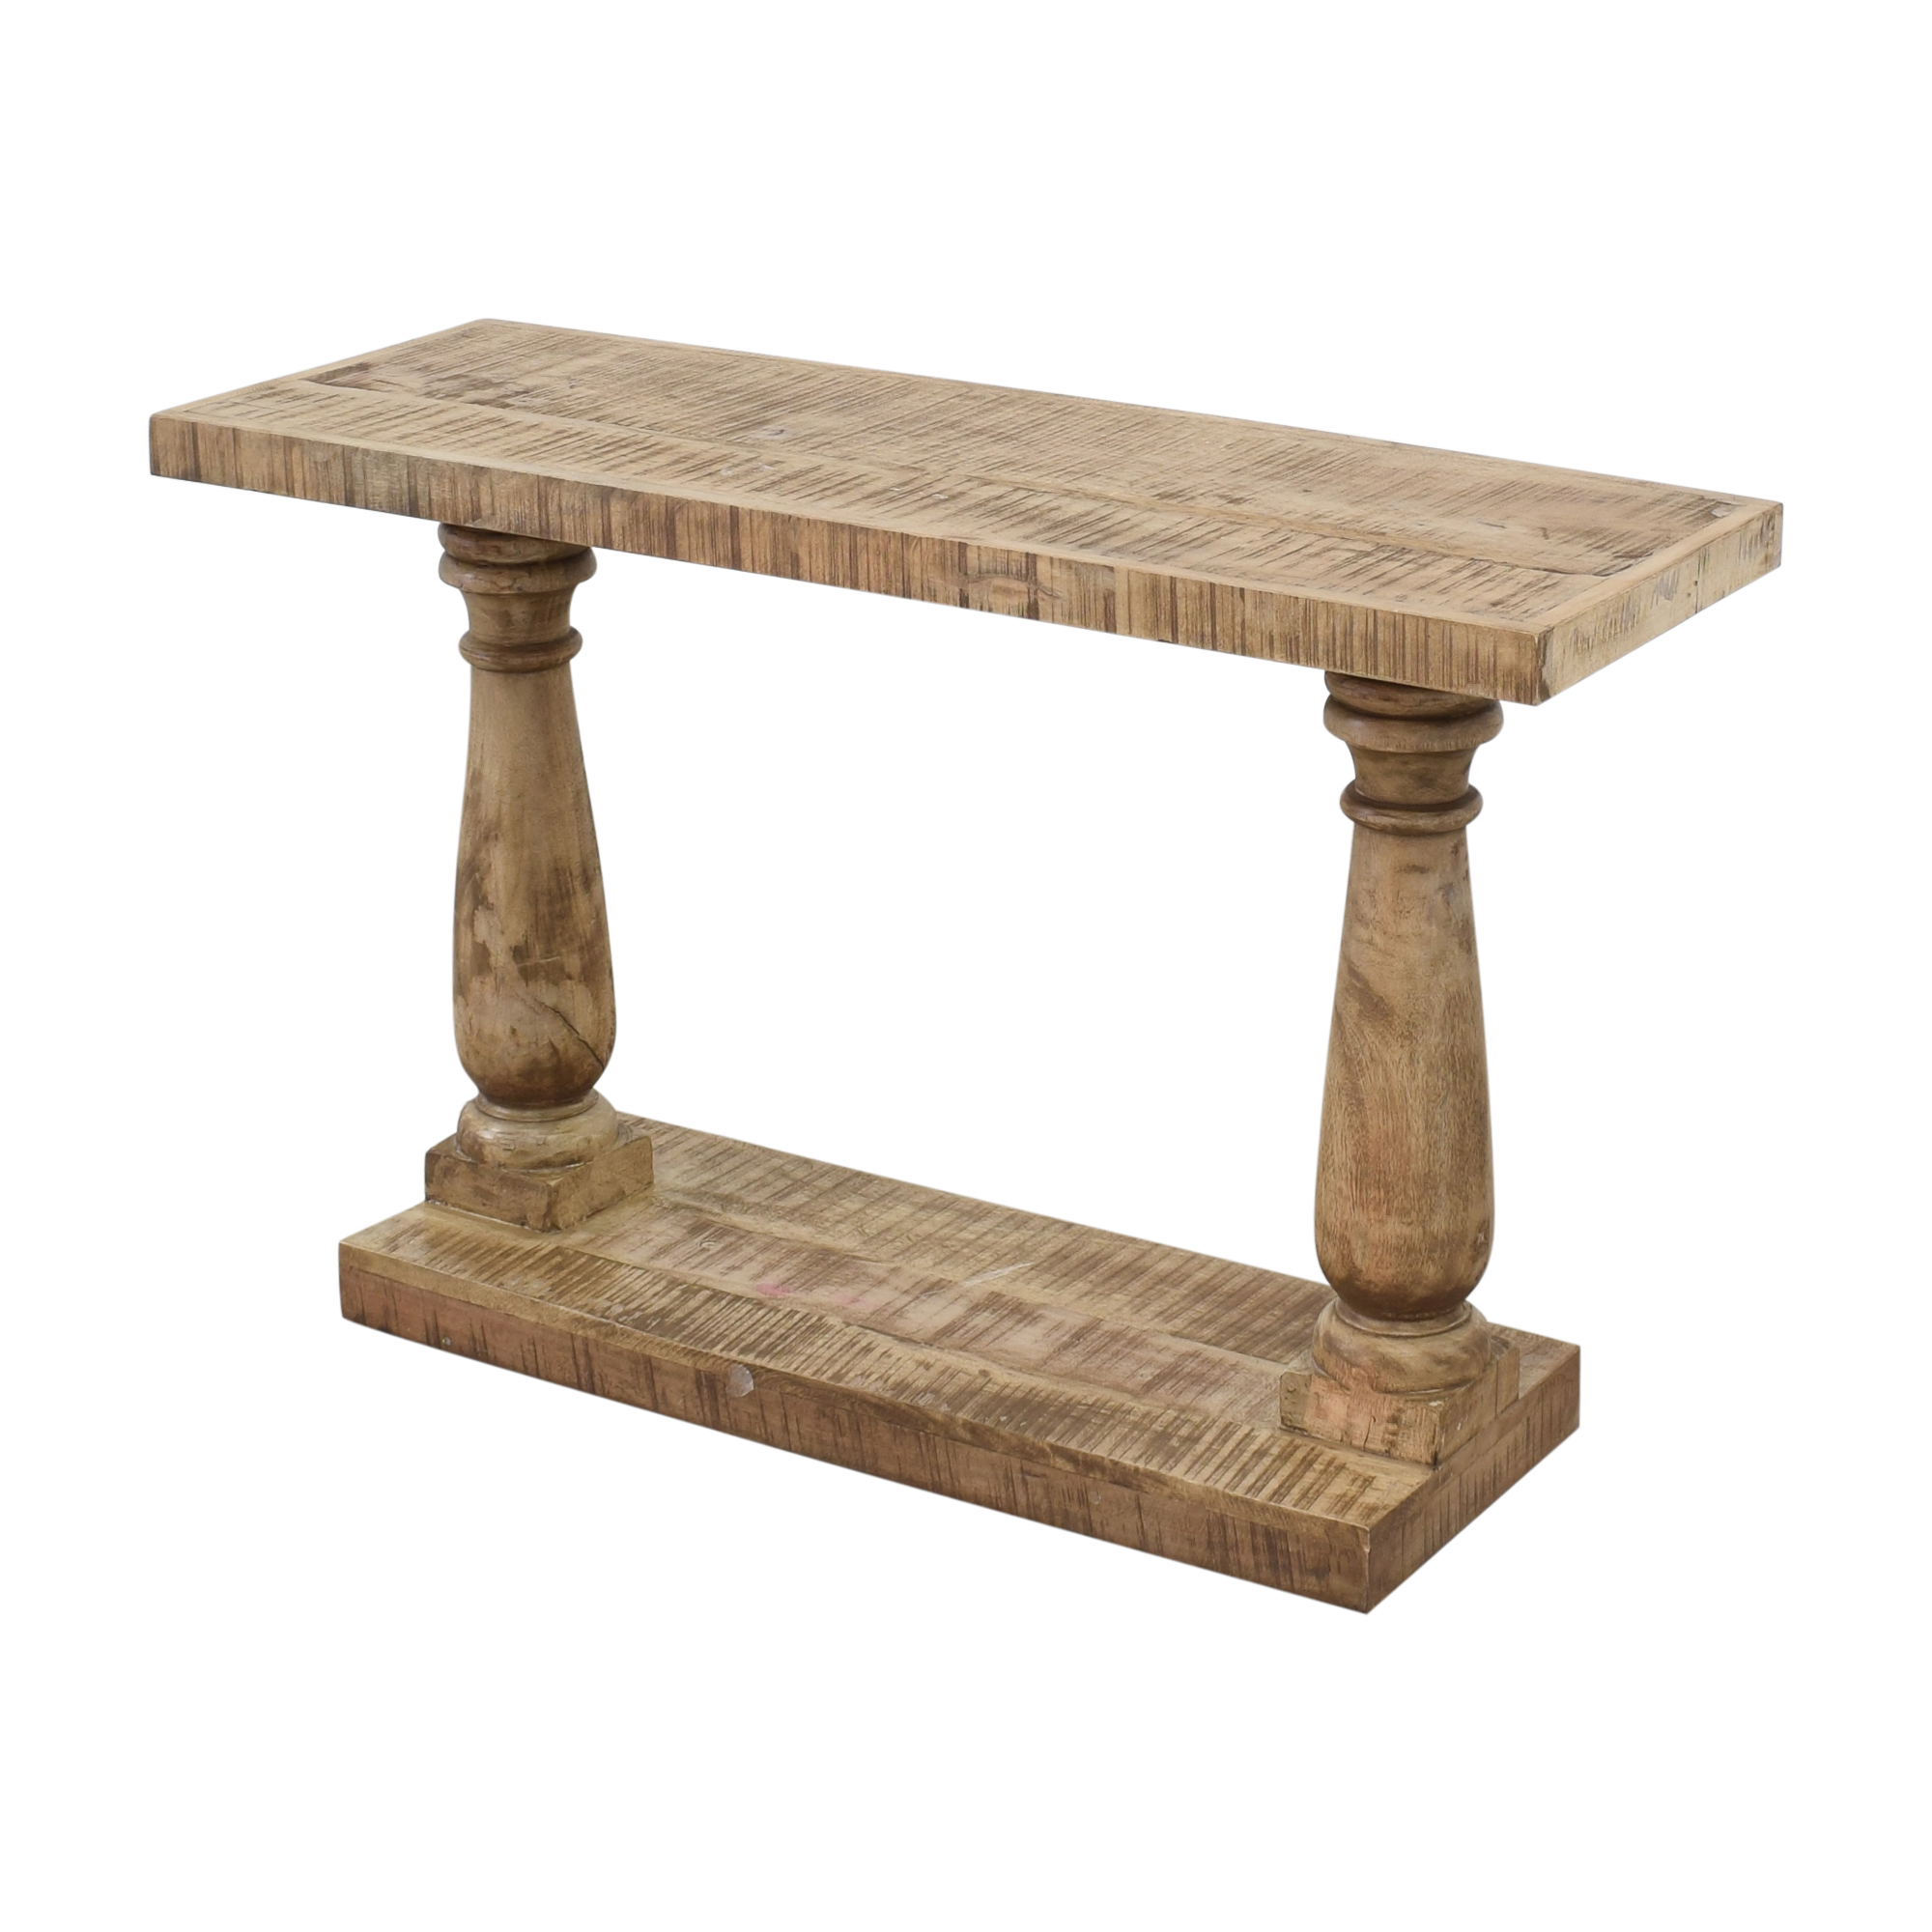 Macy's Macy's Rustic Turned Leg Console Table Accent Tables